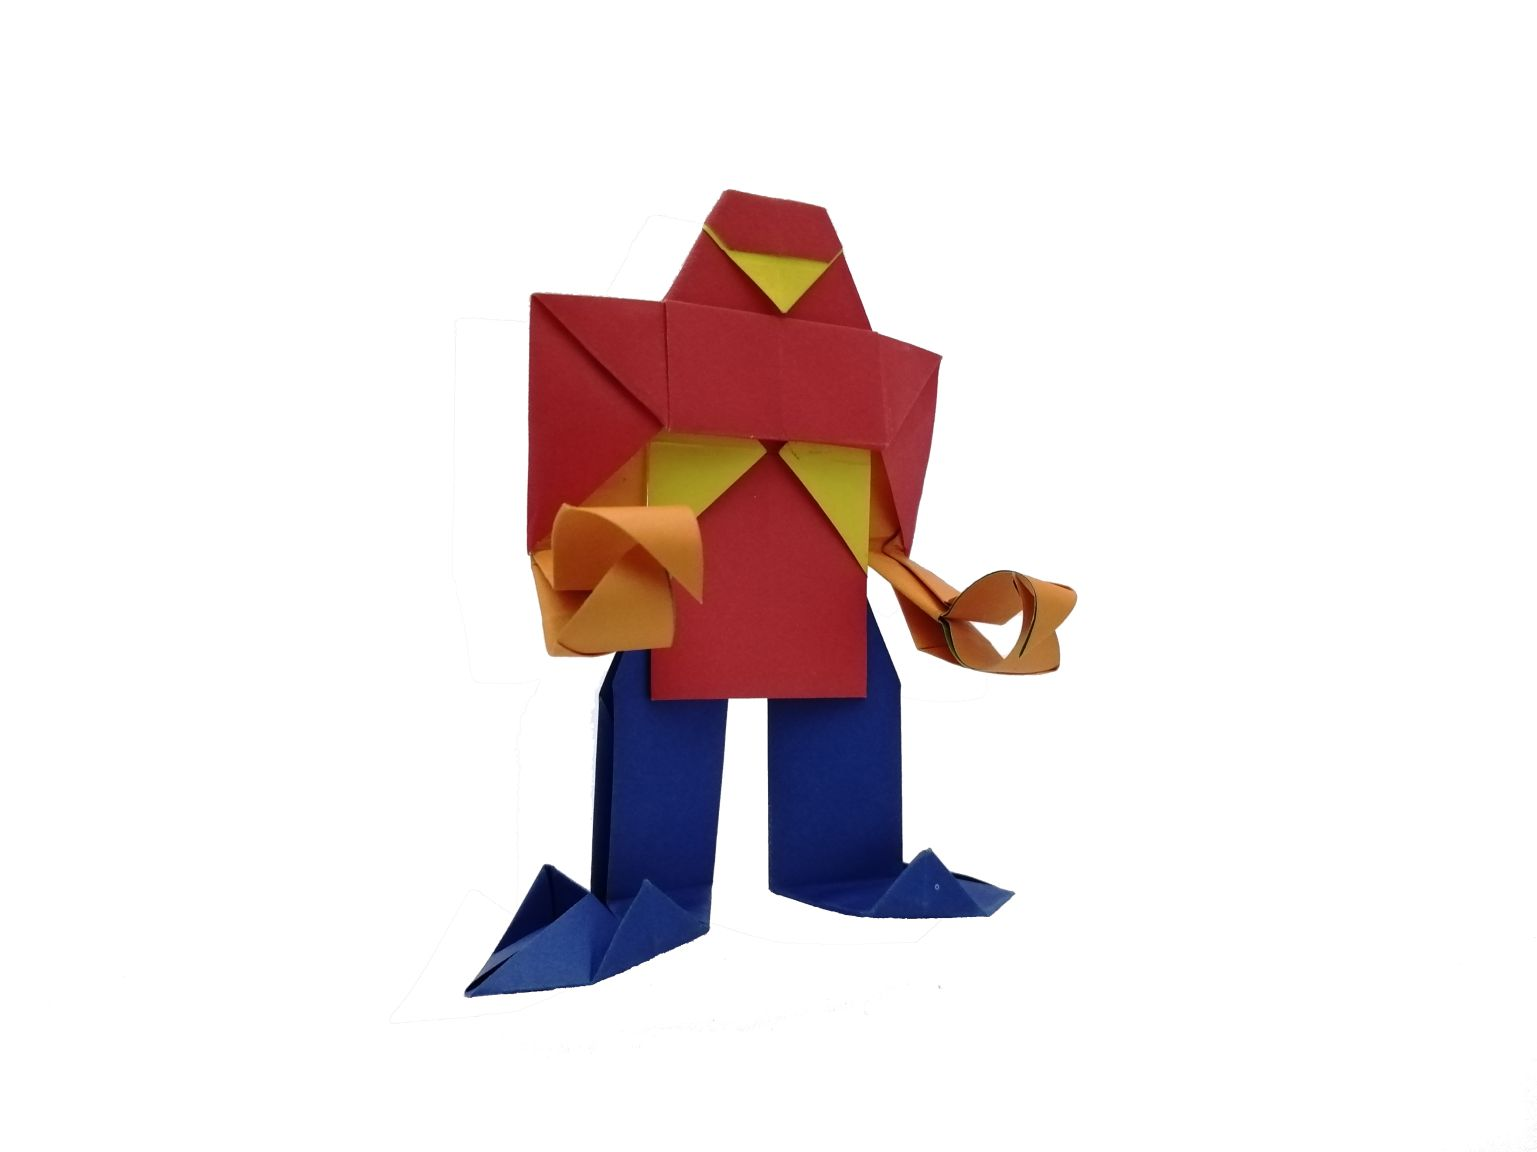 Robot fire origami